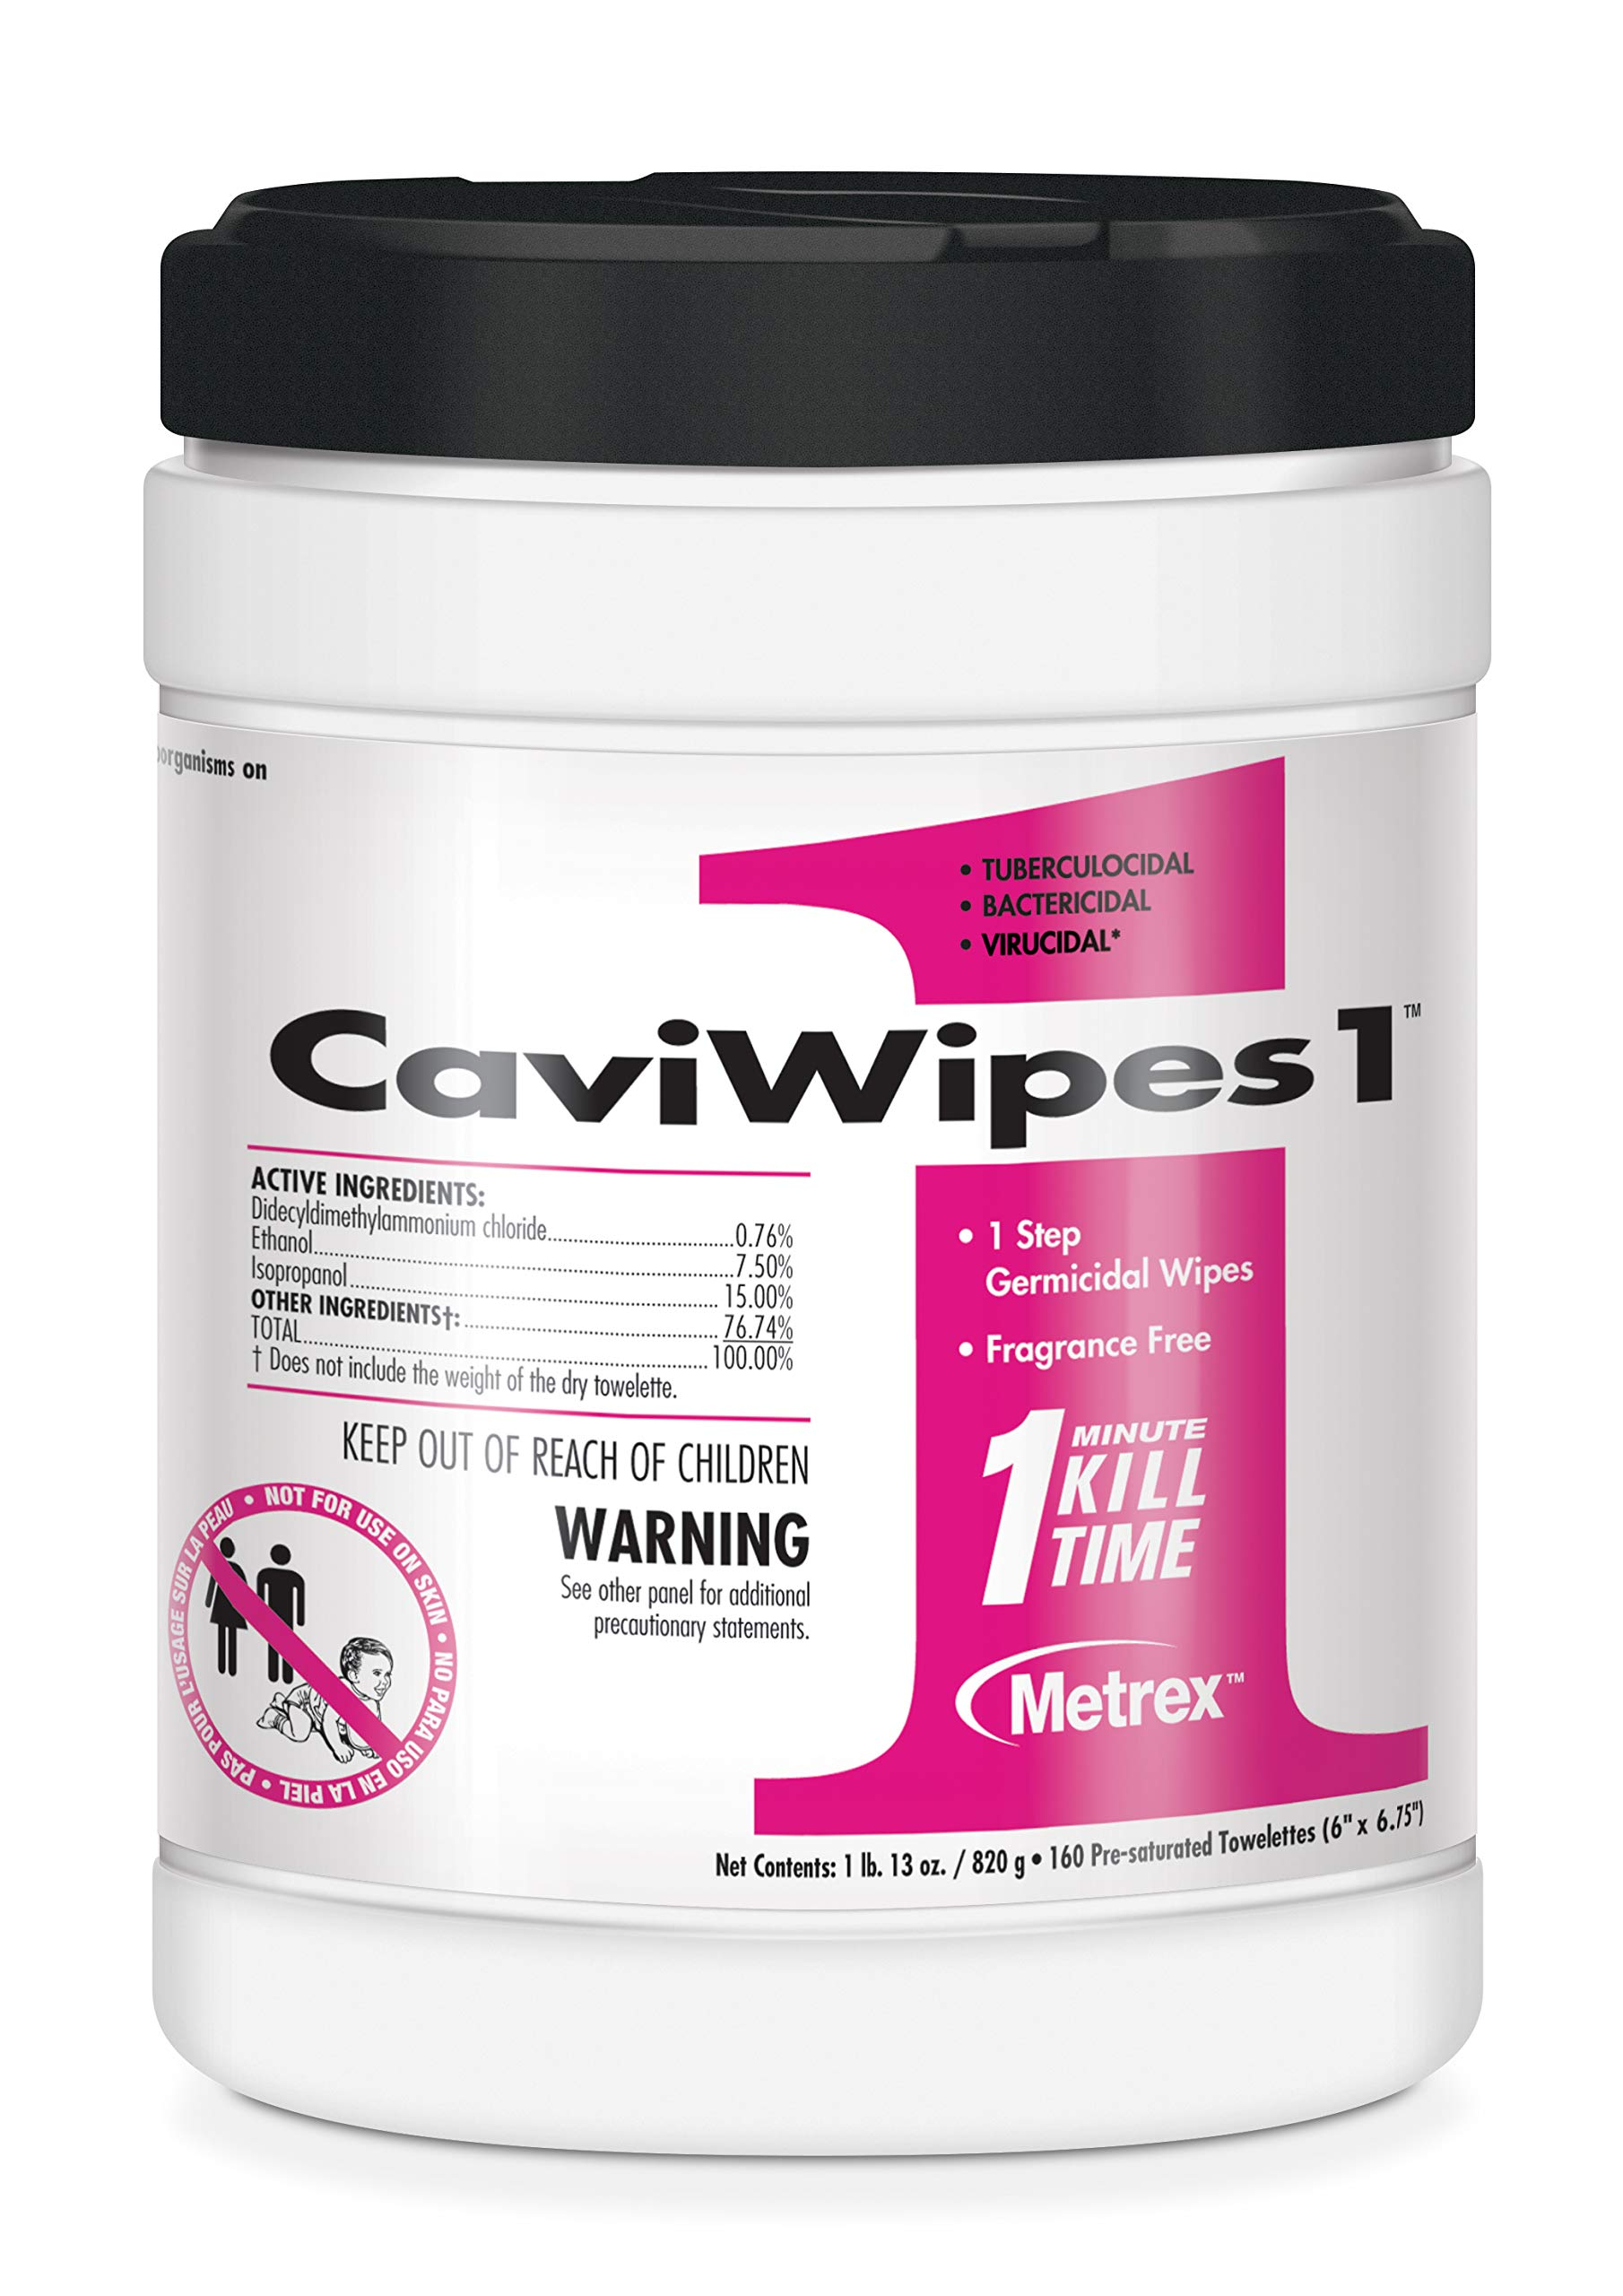 Caviwipes1 (6'' X 6.75''), 160 Count (Case Of 12 Canisters) - 13-5100